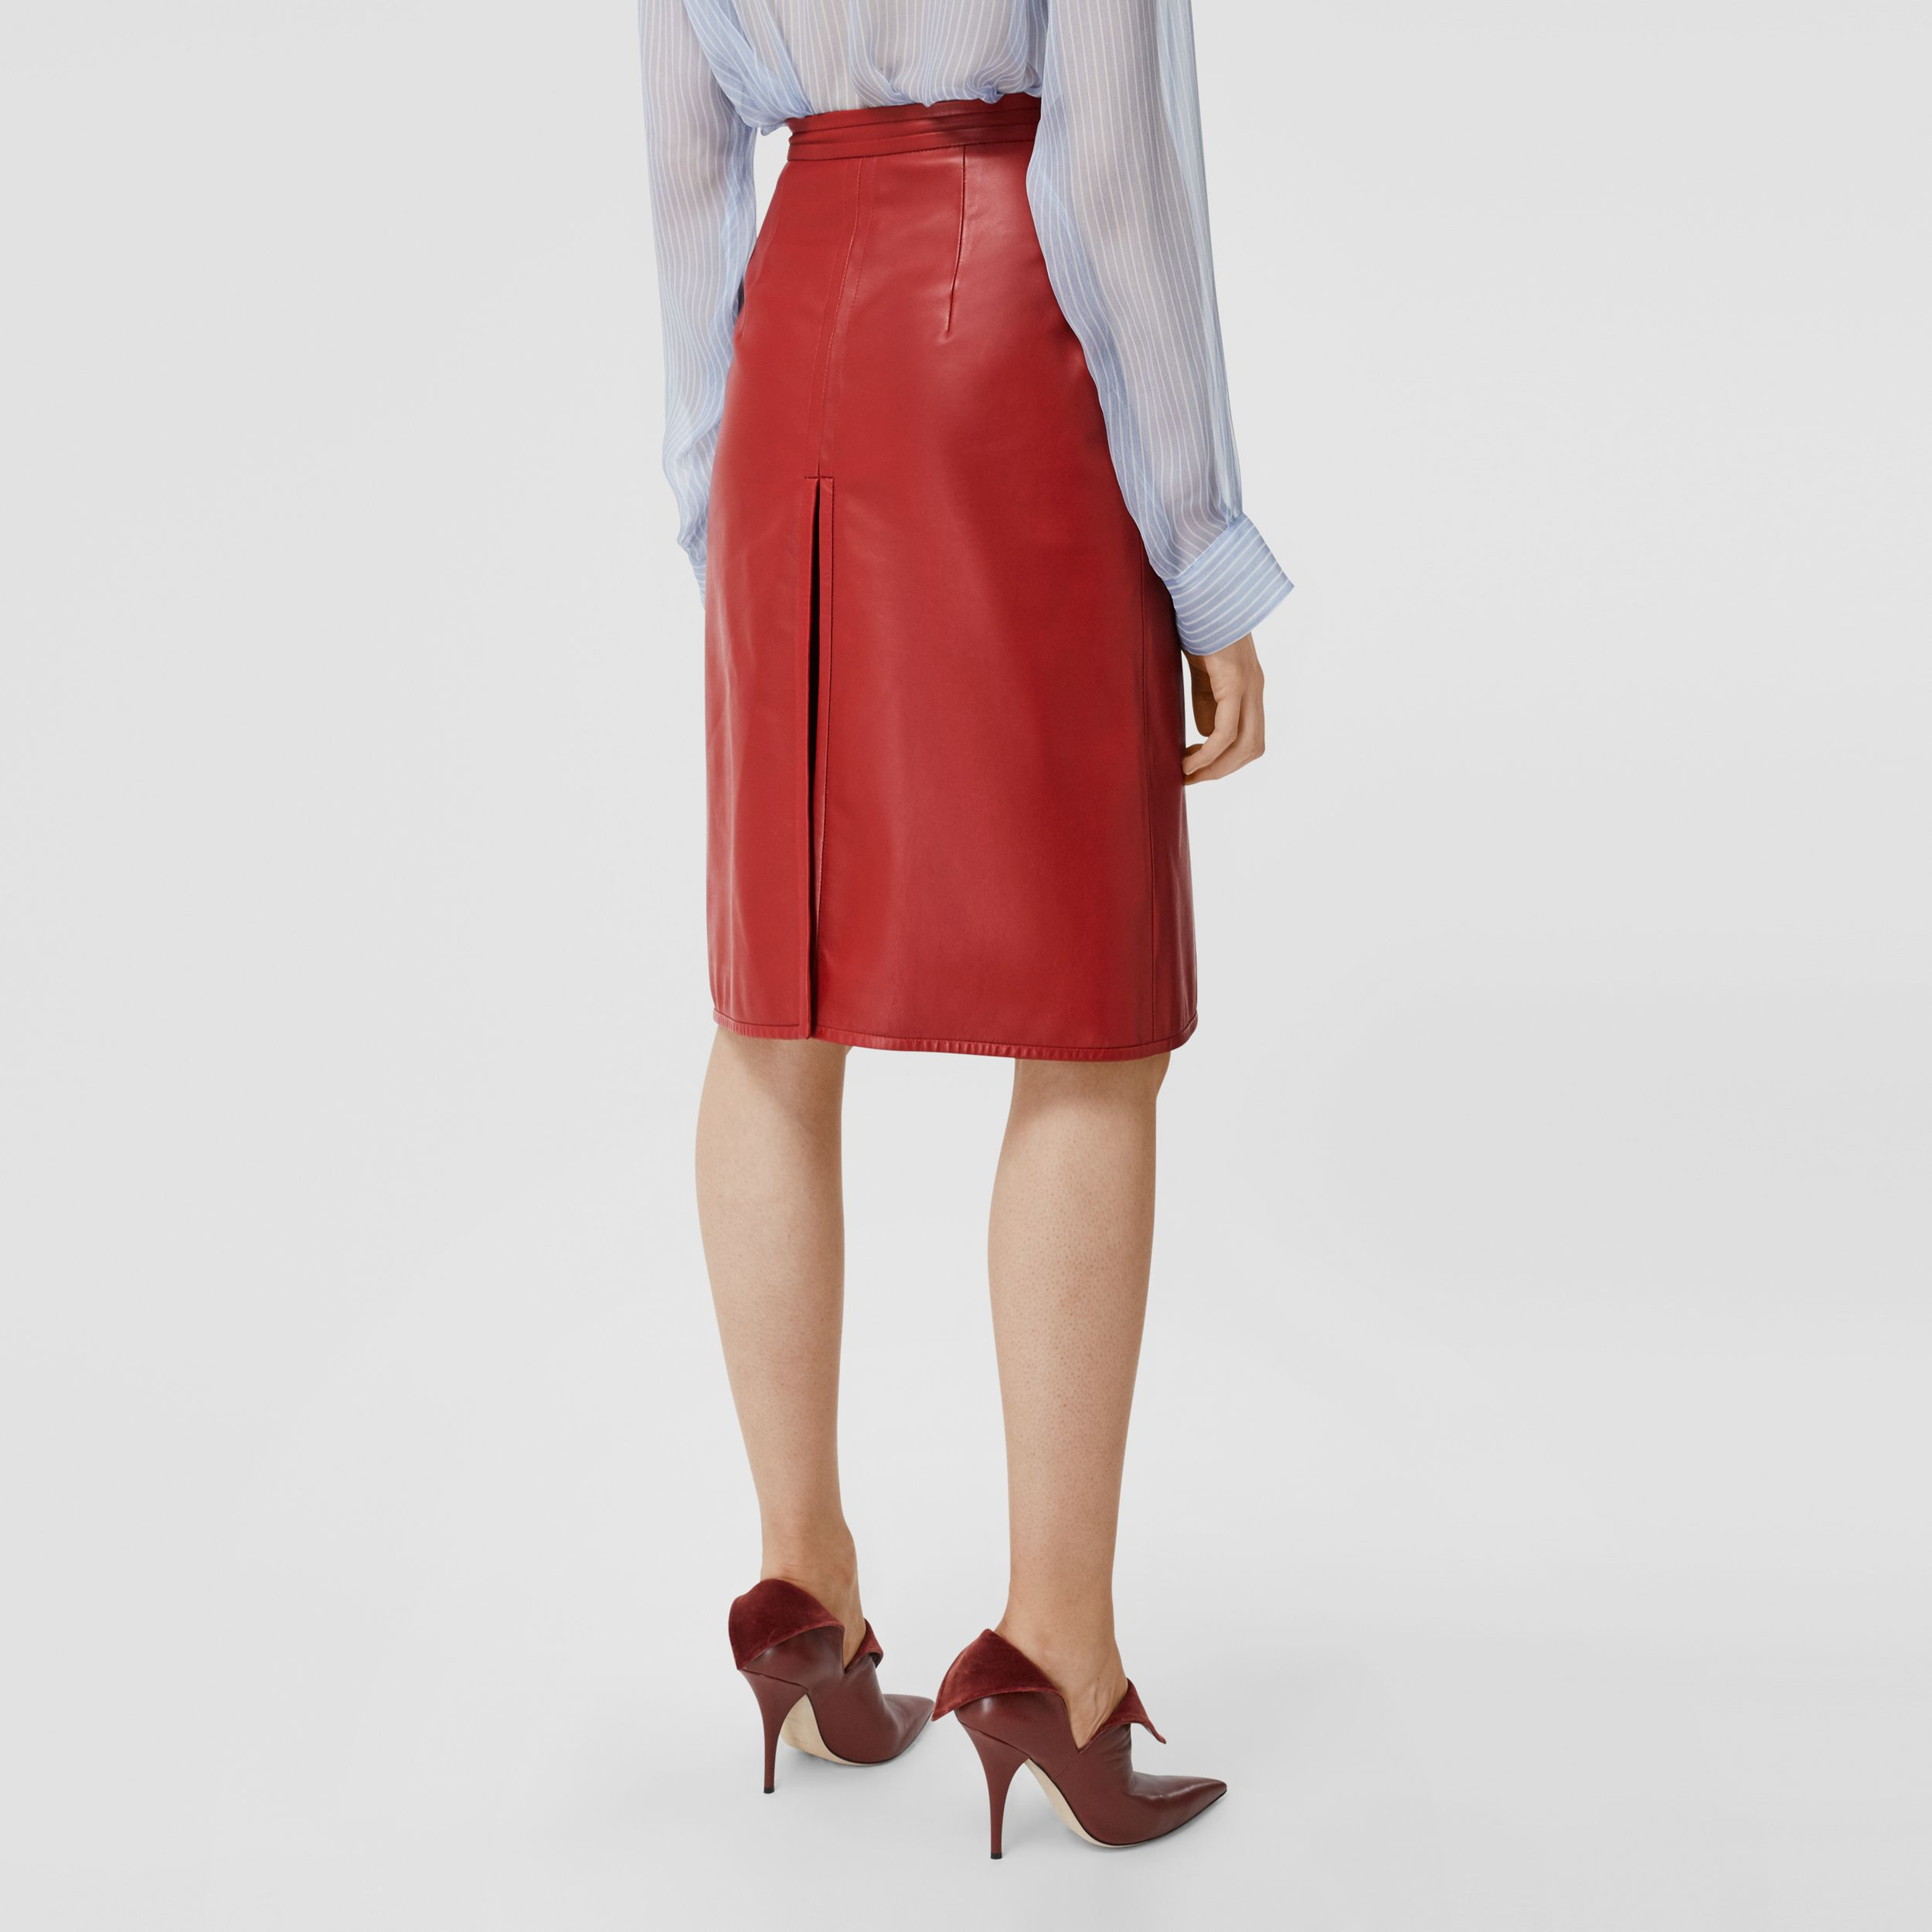 Box-pleat Detail Leather A-line Skirt in Dark Carmine - Women | Burberry Australia - 3